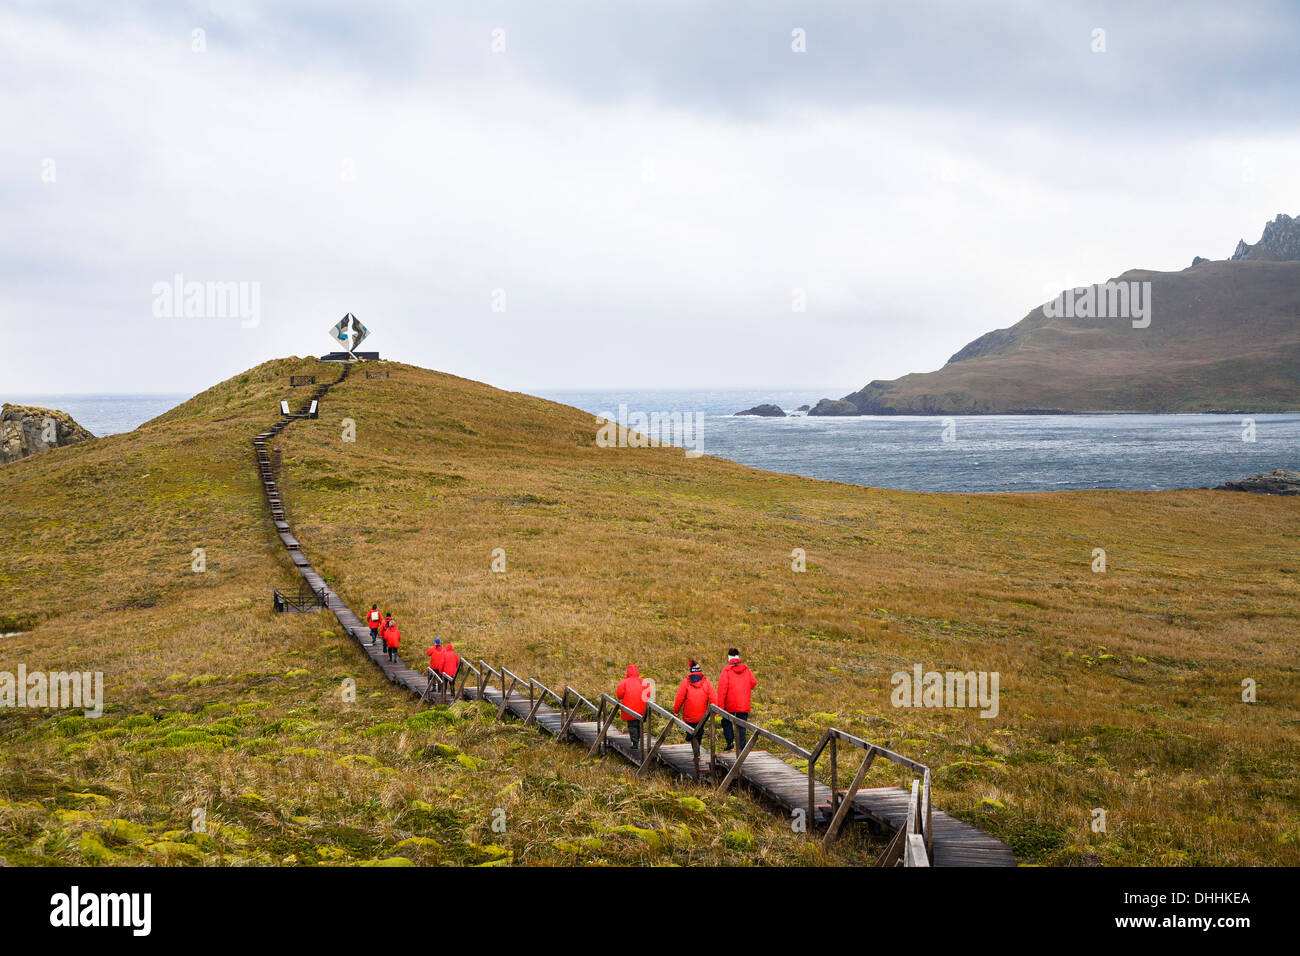 Memorial for castaways at Cape Horn, Cape Horn National Park, Cape Horn Island, Tierra del Fuego, Patagonia, Chile, Stock Photo